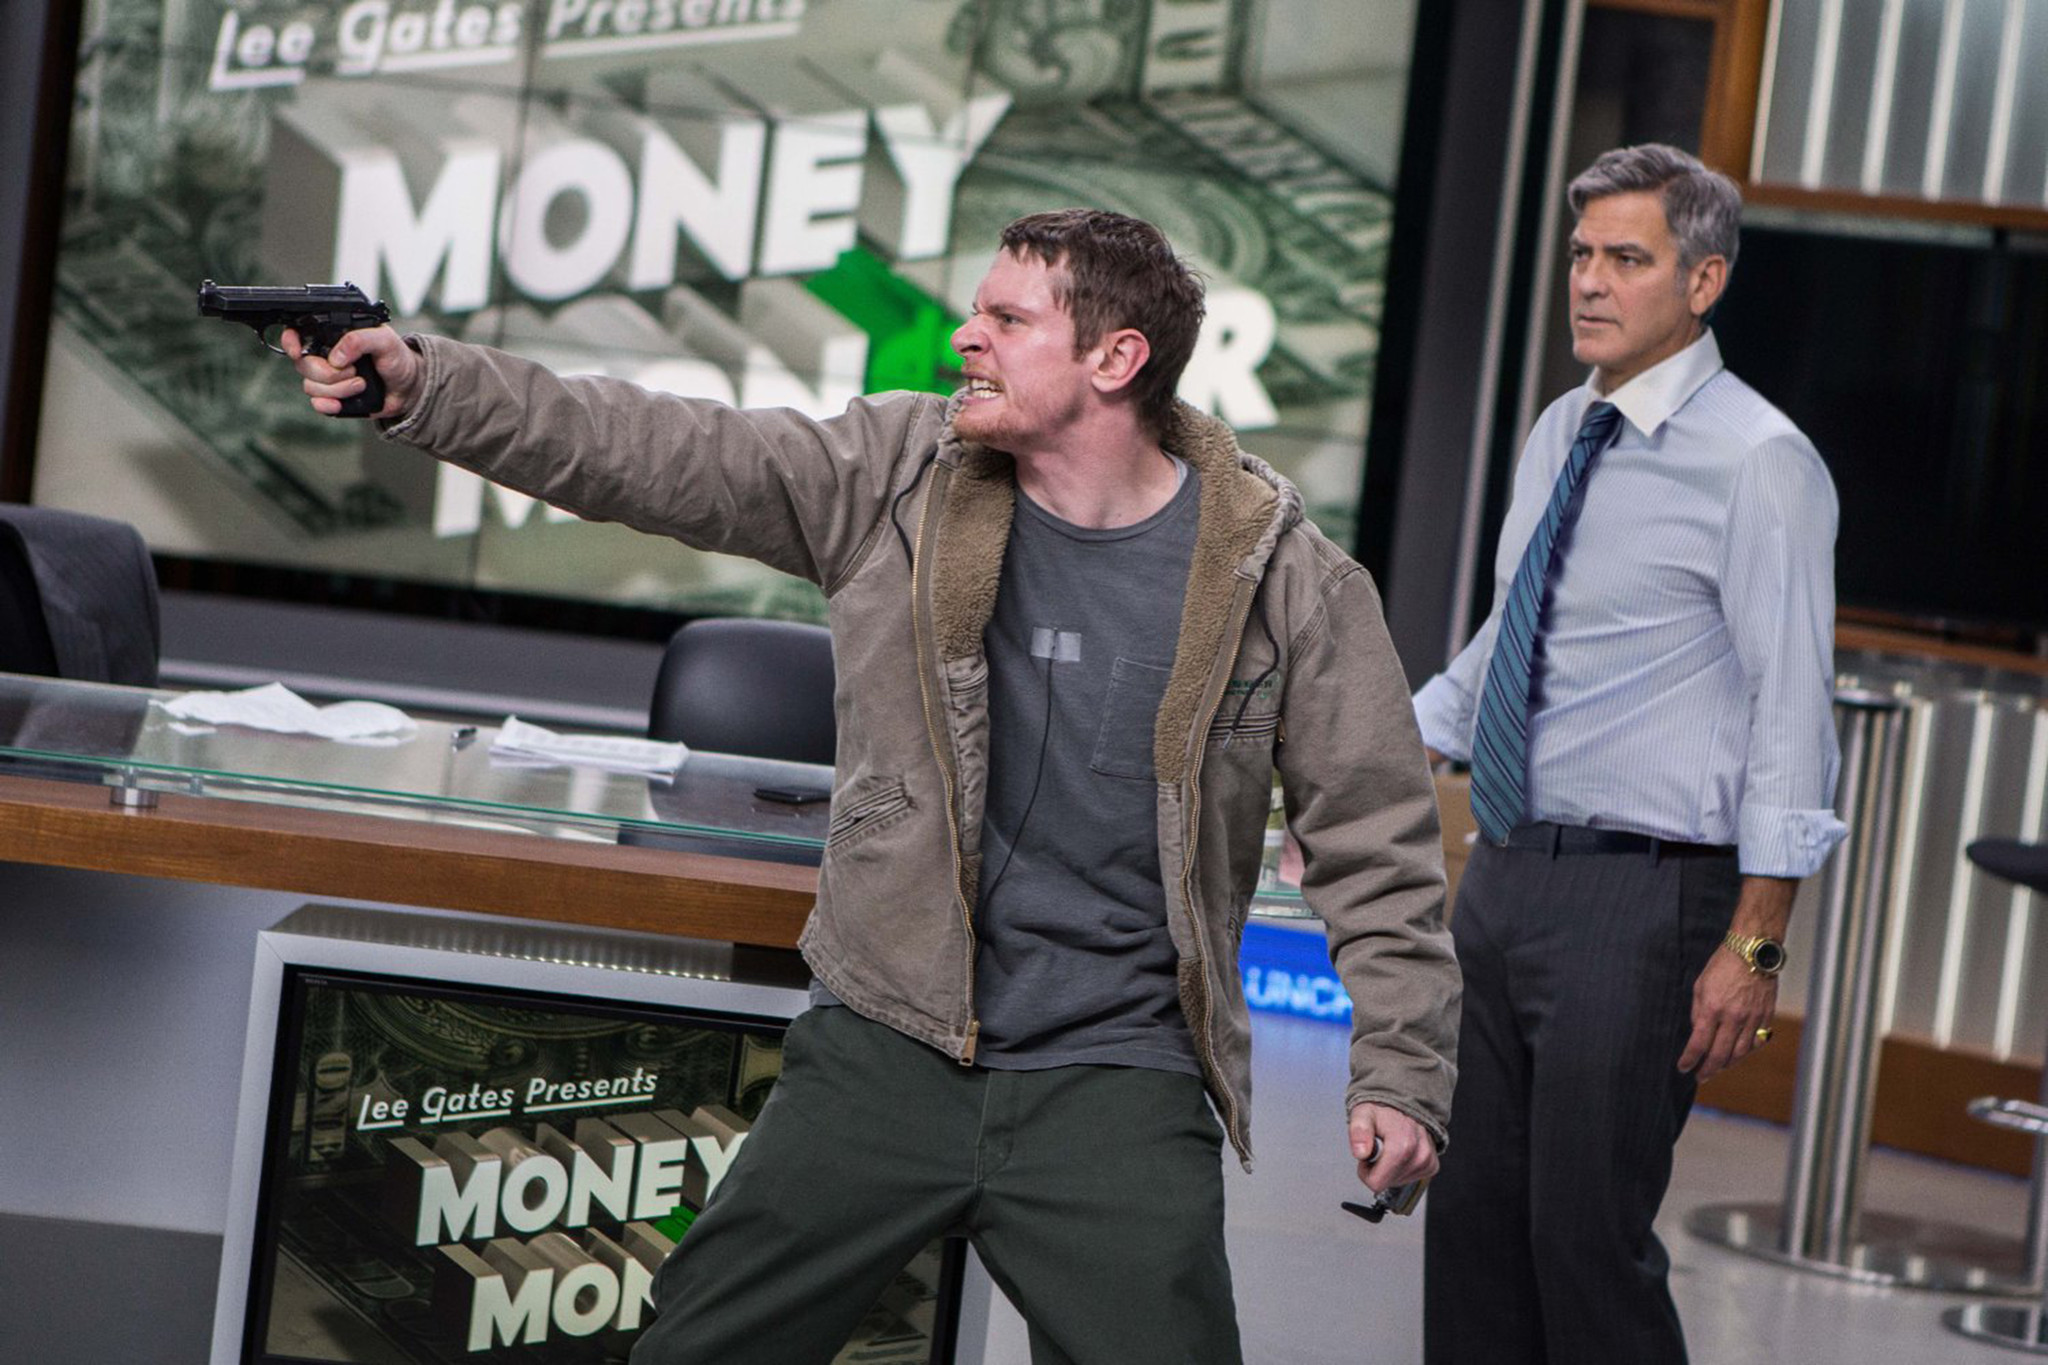 'Money Monster' review: Jodie Foster's hostage thriller struggles to maintain momentum, credibility